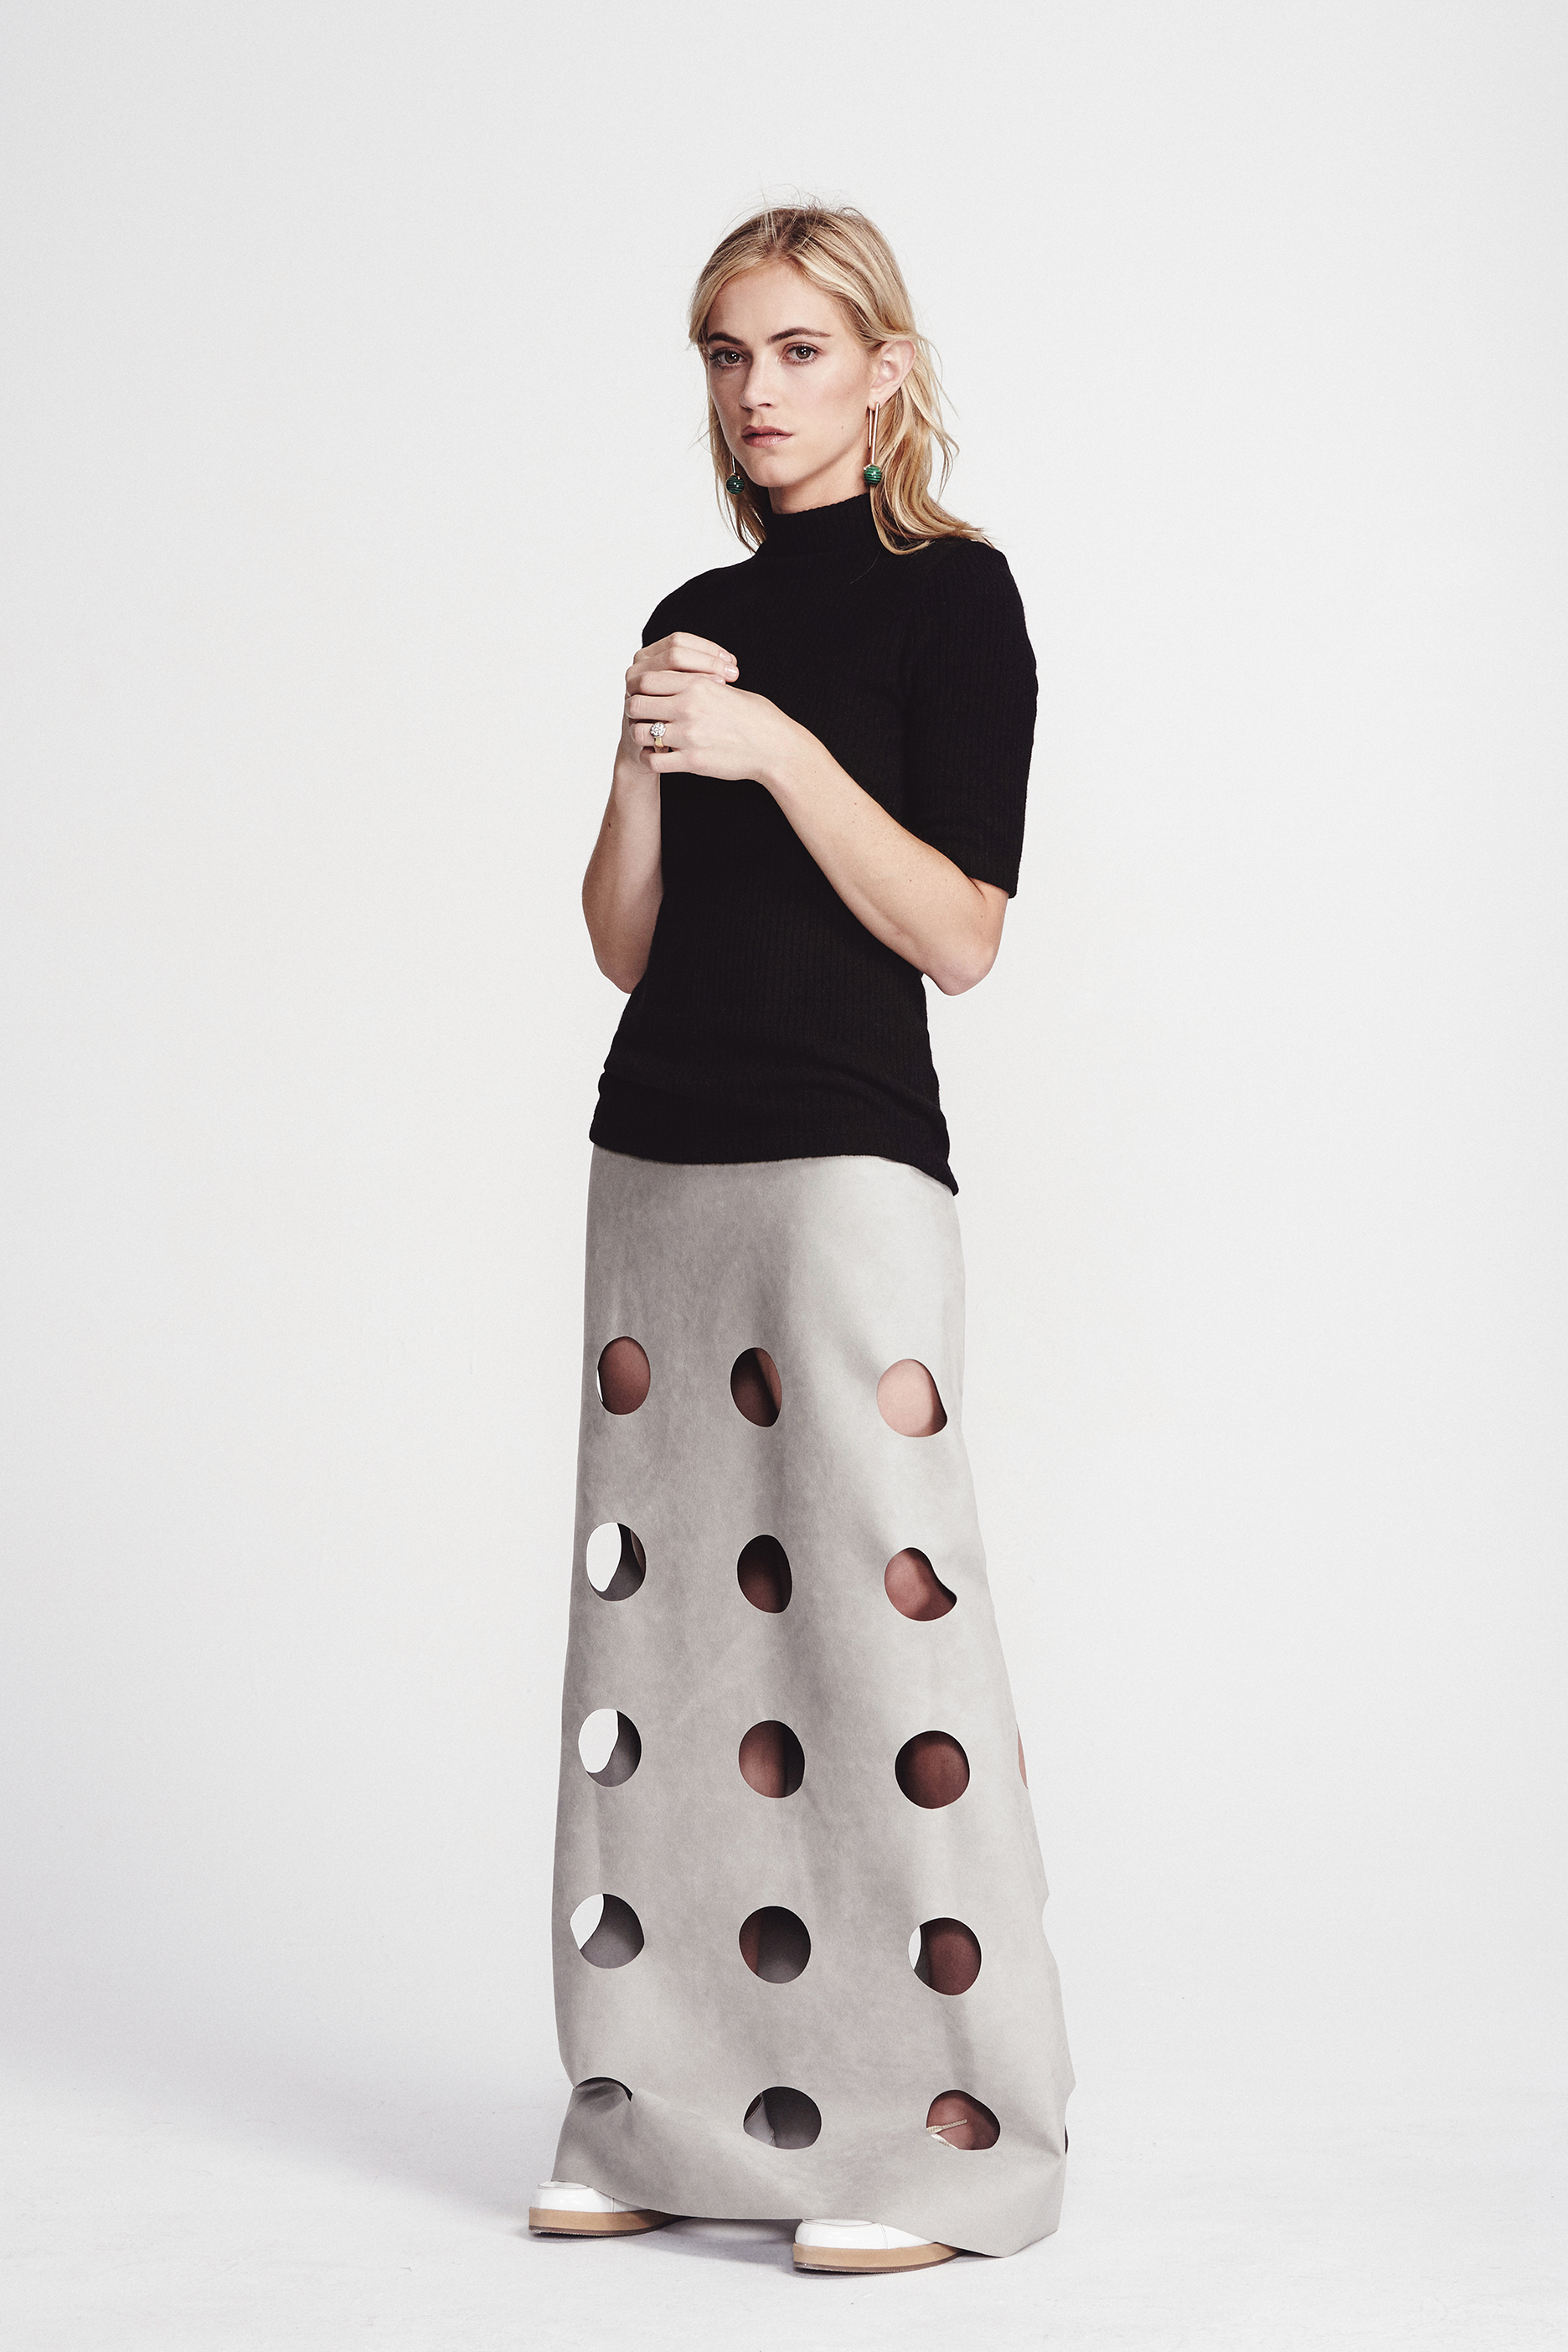 Top by   ASSEMBLY NEW YORK ,  Skirt by   CF. GOLDMAN   courtesy of   ASSEMBLY LOS ANGELES  , Shoes by   MAIYET  , Earrings by   ZARA  , Ring by   CARTIER  .